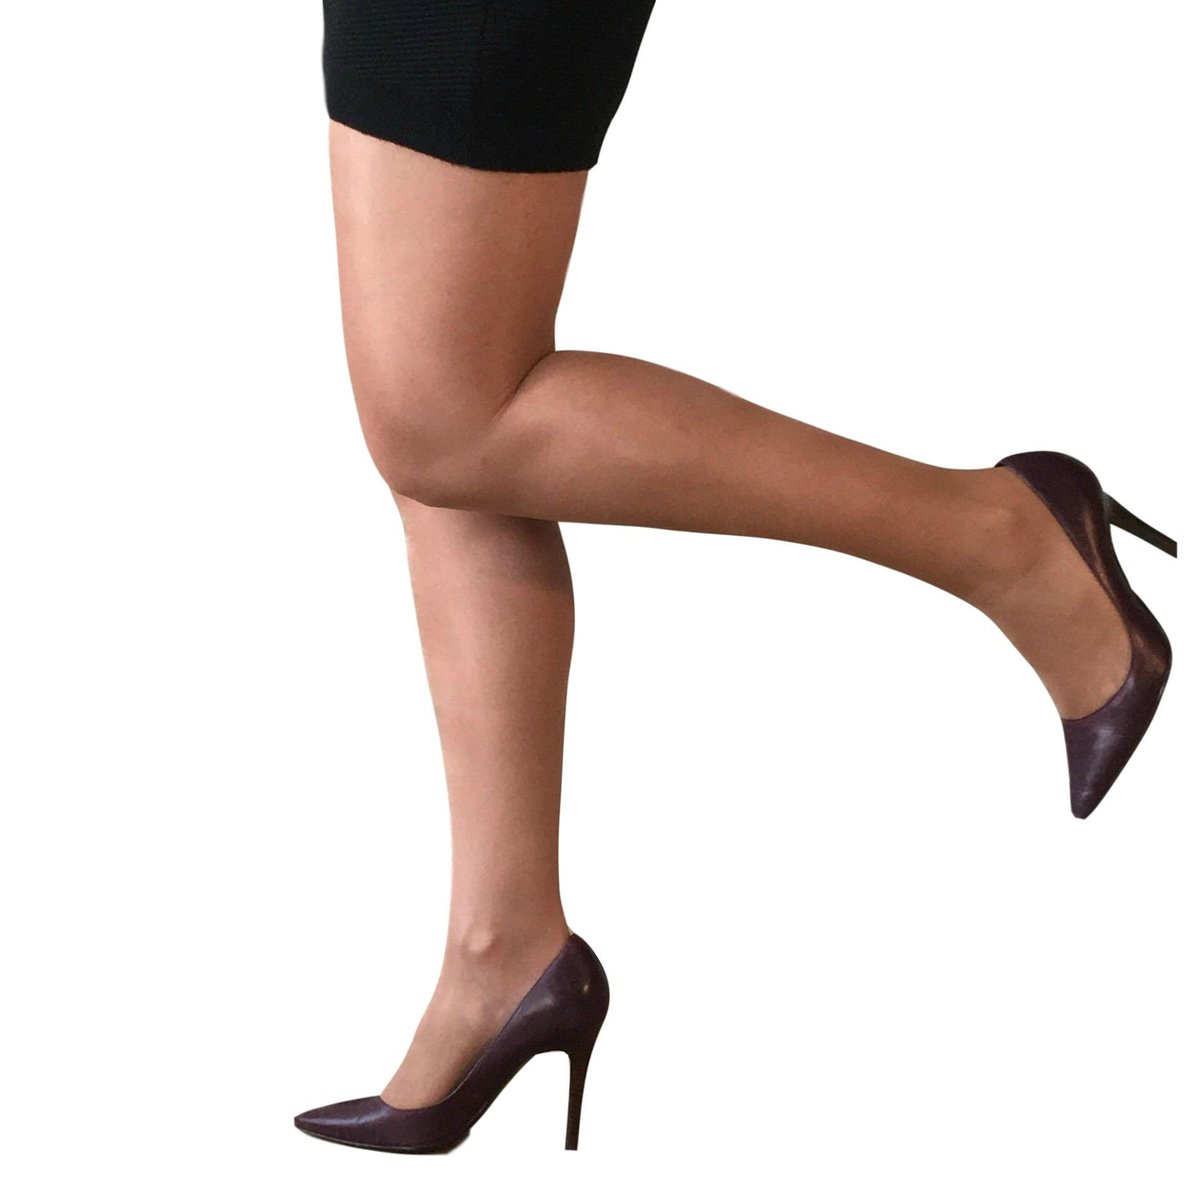 c52c7aaf56707 Glossy tights for fuller figure ladies. 15 denier plus size tights with